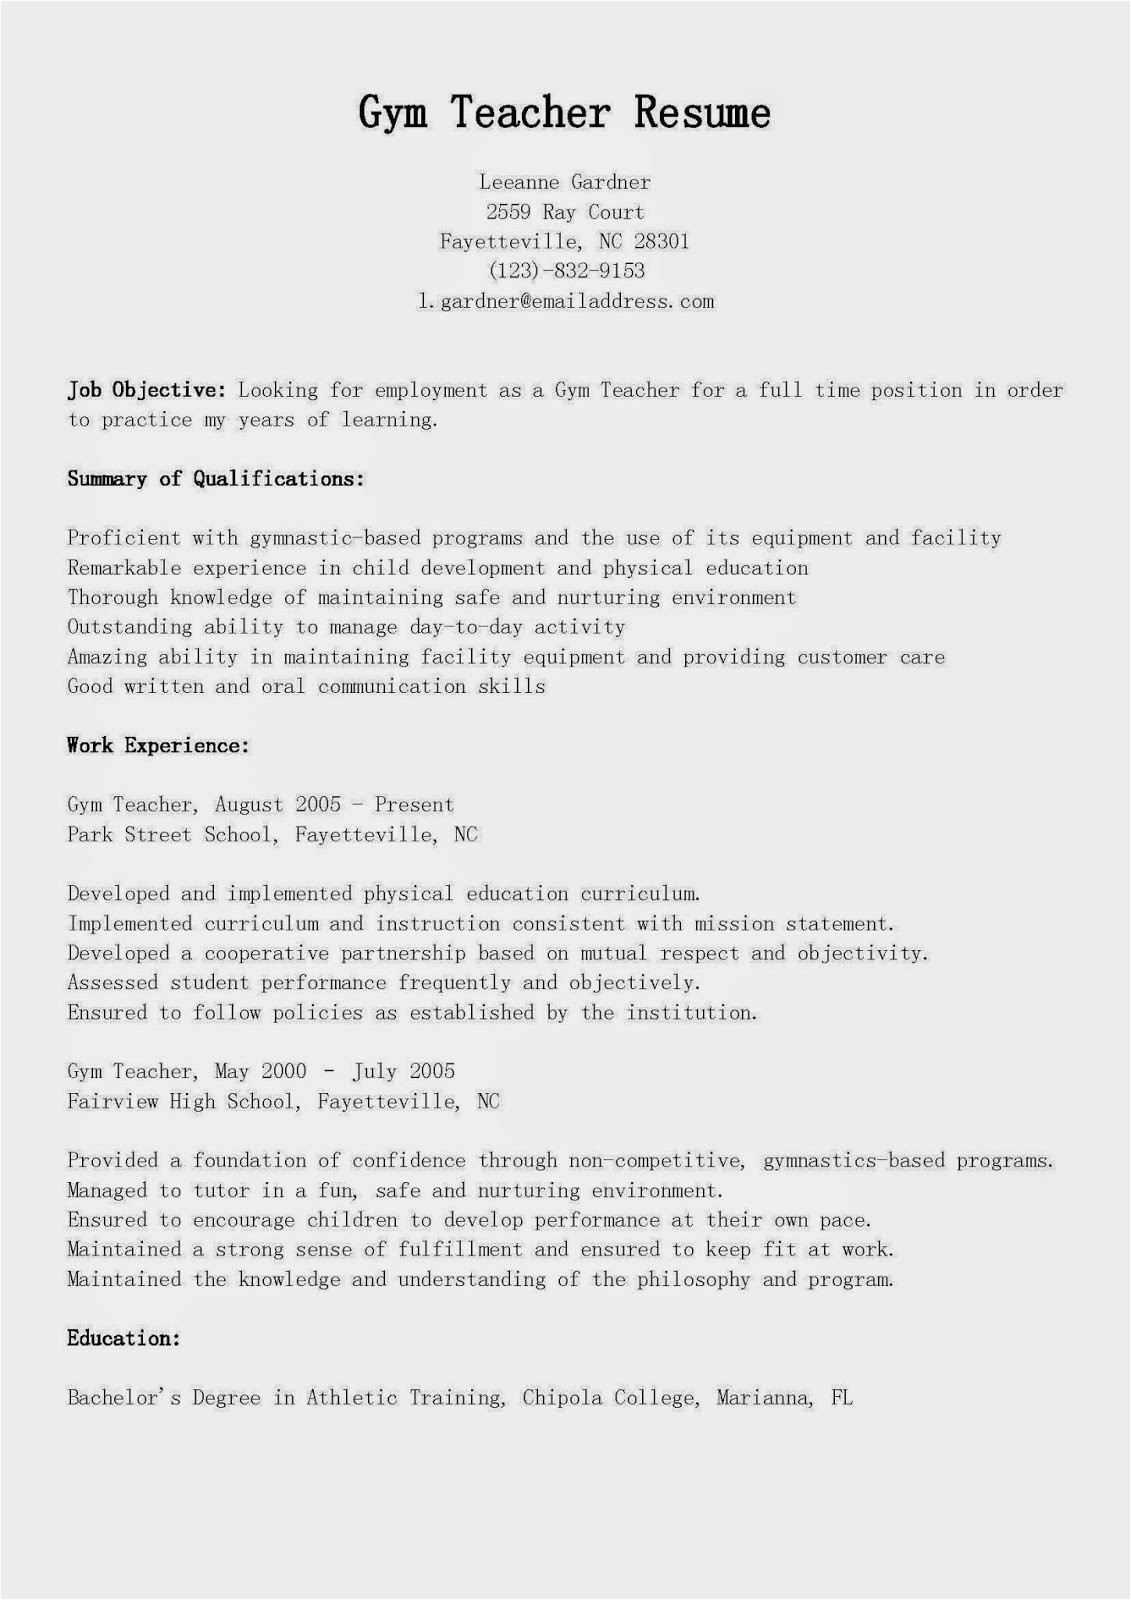 gym teacher resume sample